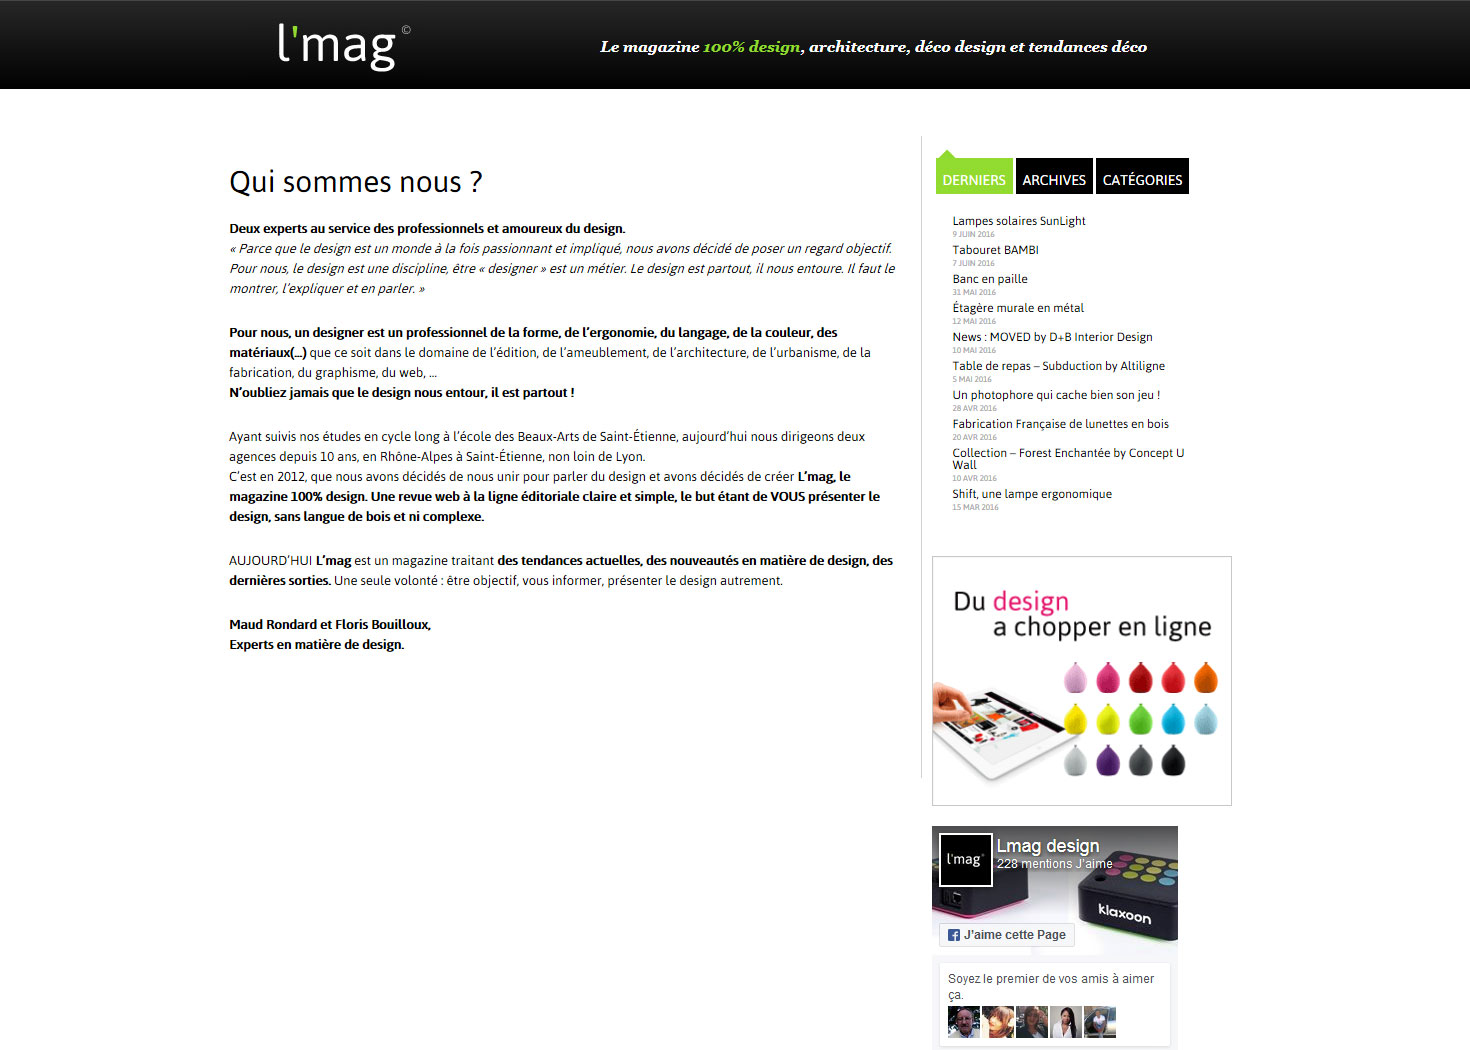 lmagdesign-page3